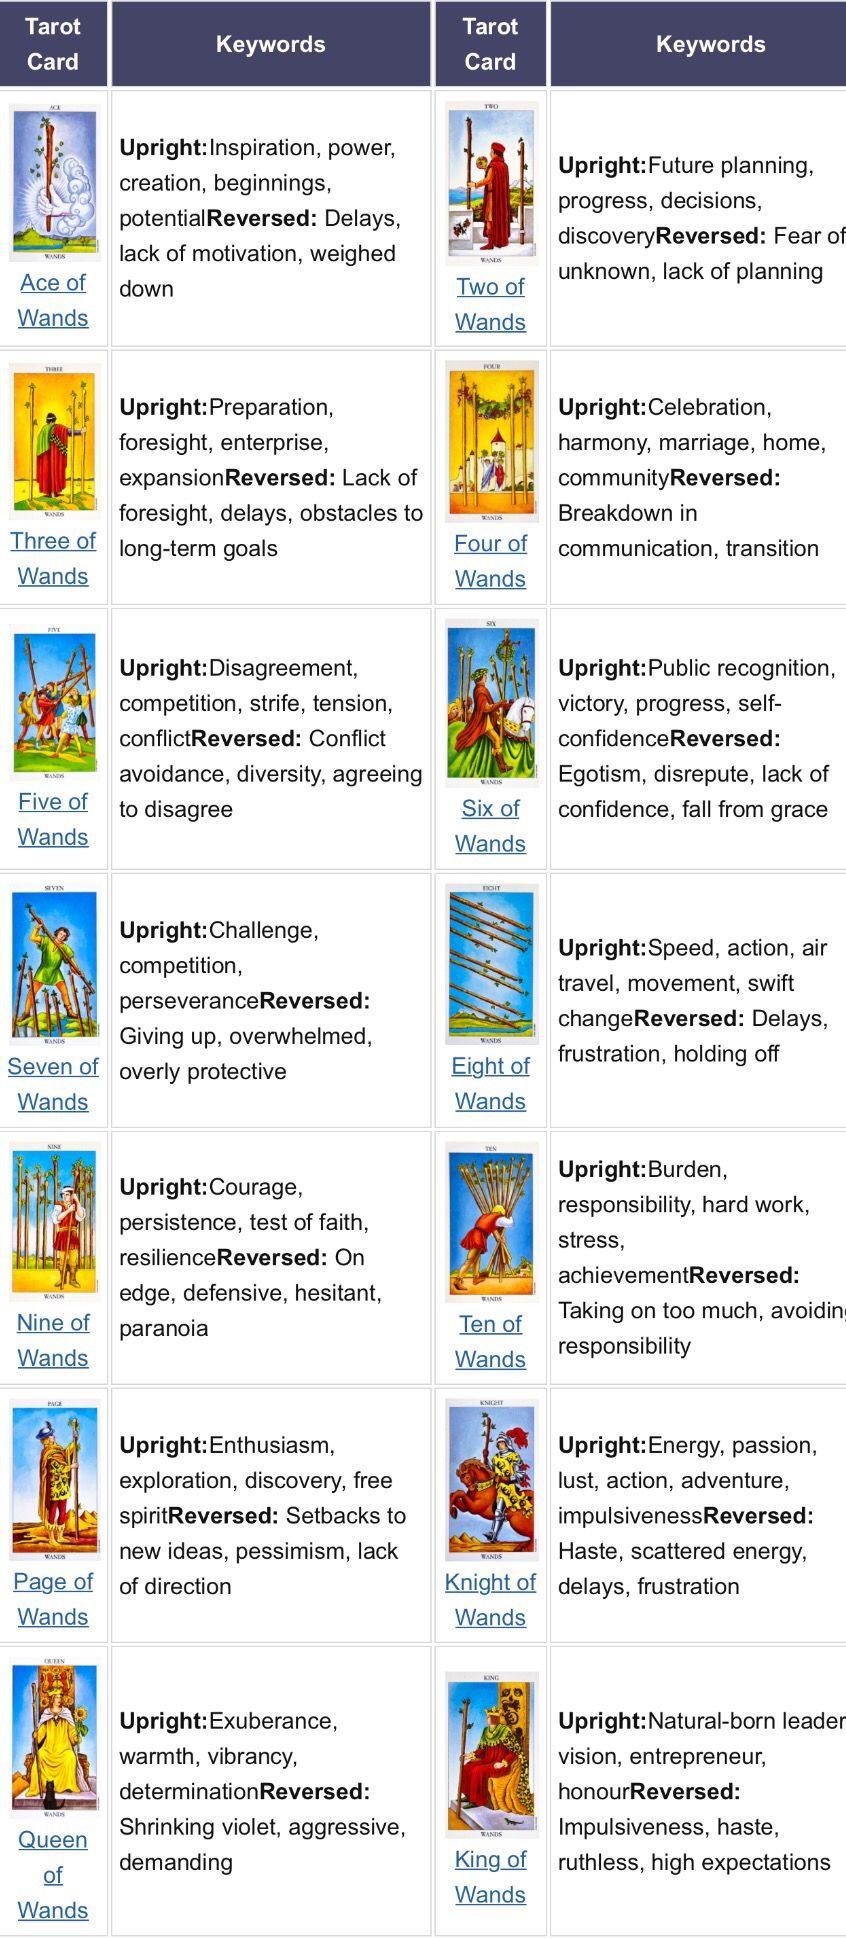 Suit Of Wands Tarot Card Meanings